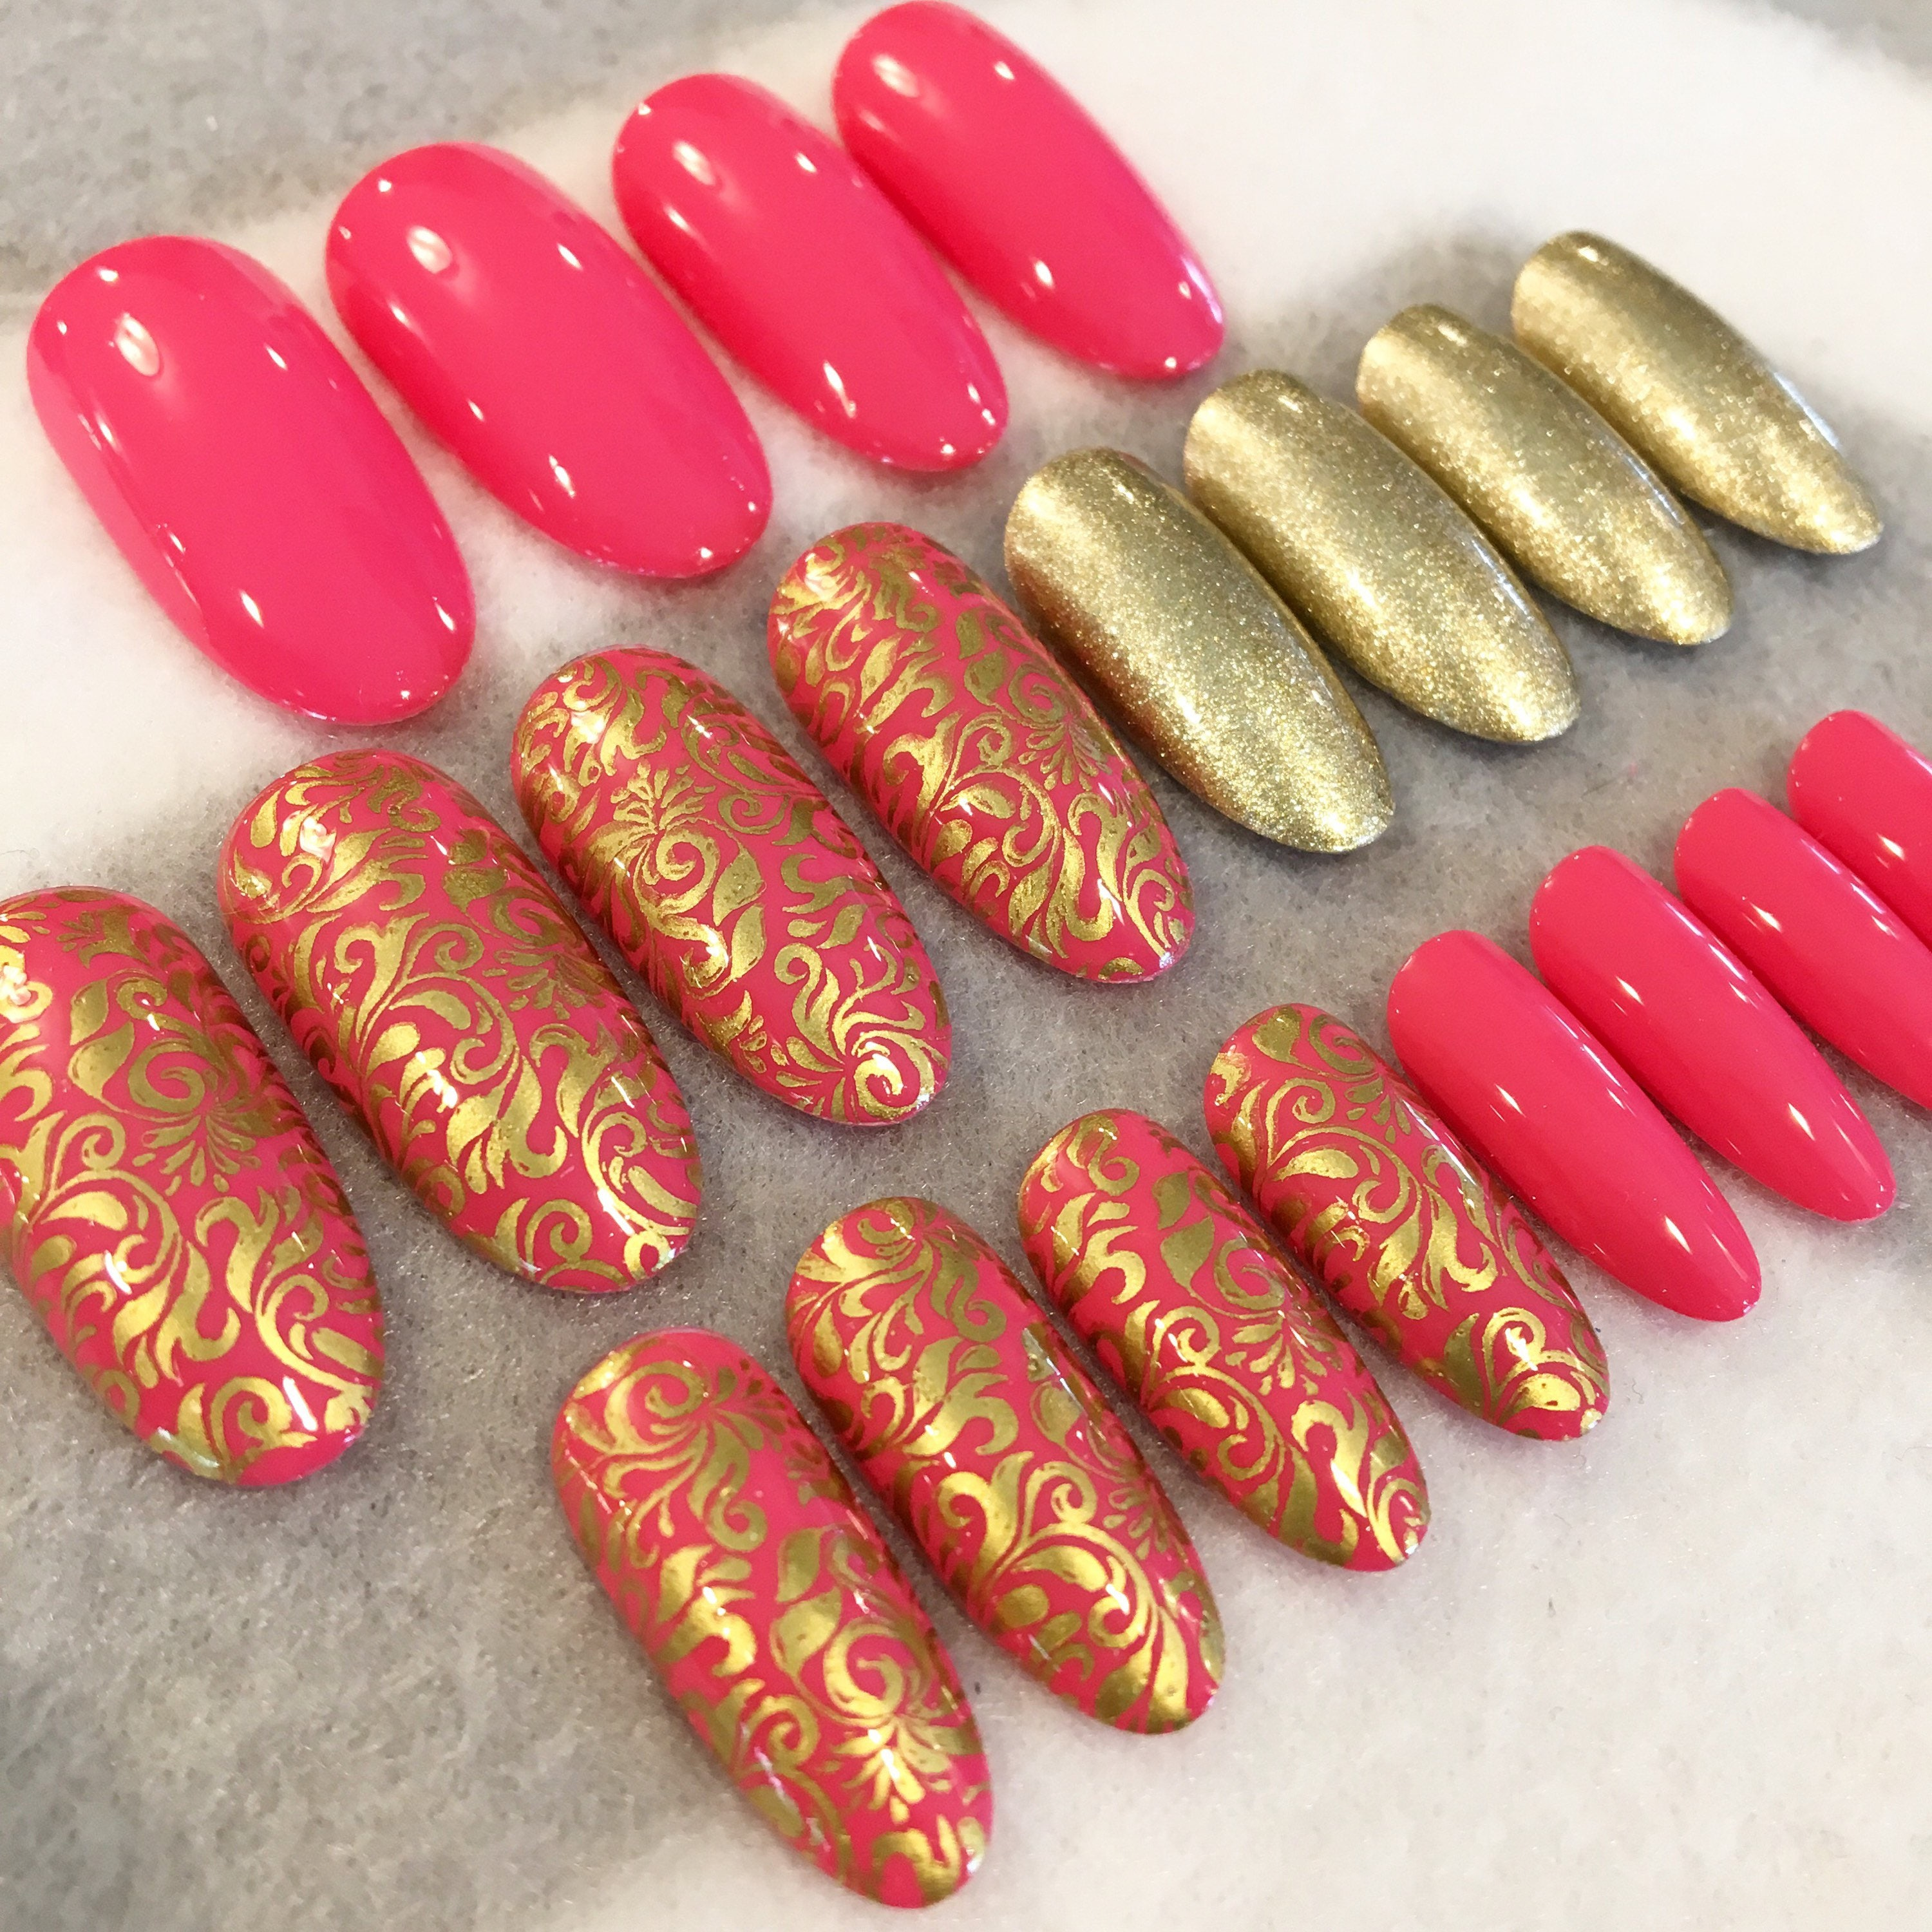 Pink And Gold Scroll Print Fake Nails * Faux Nails * Glue On Nails ...